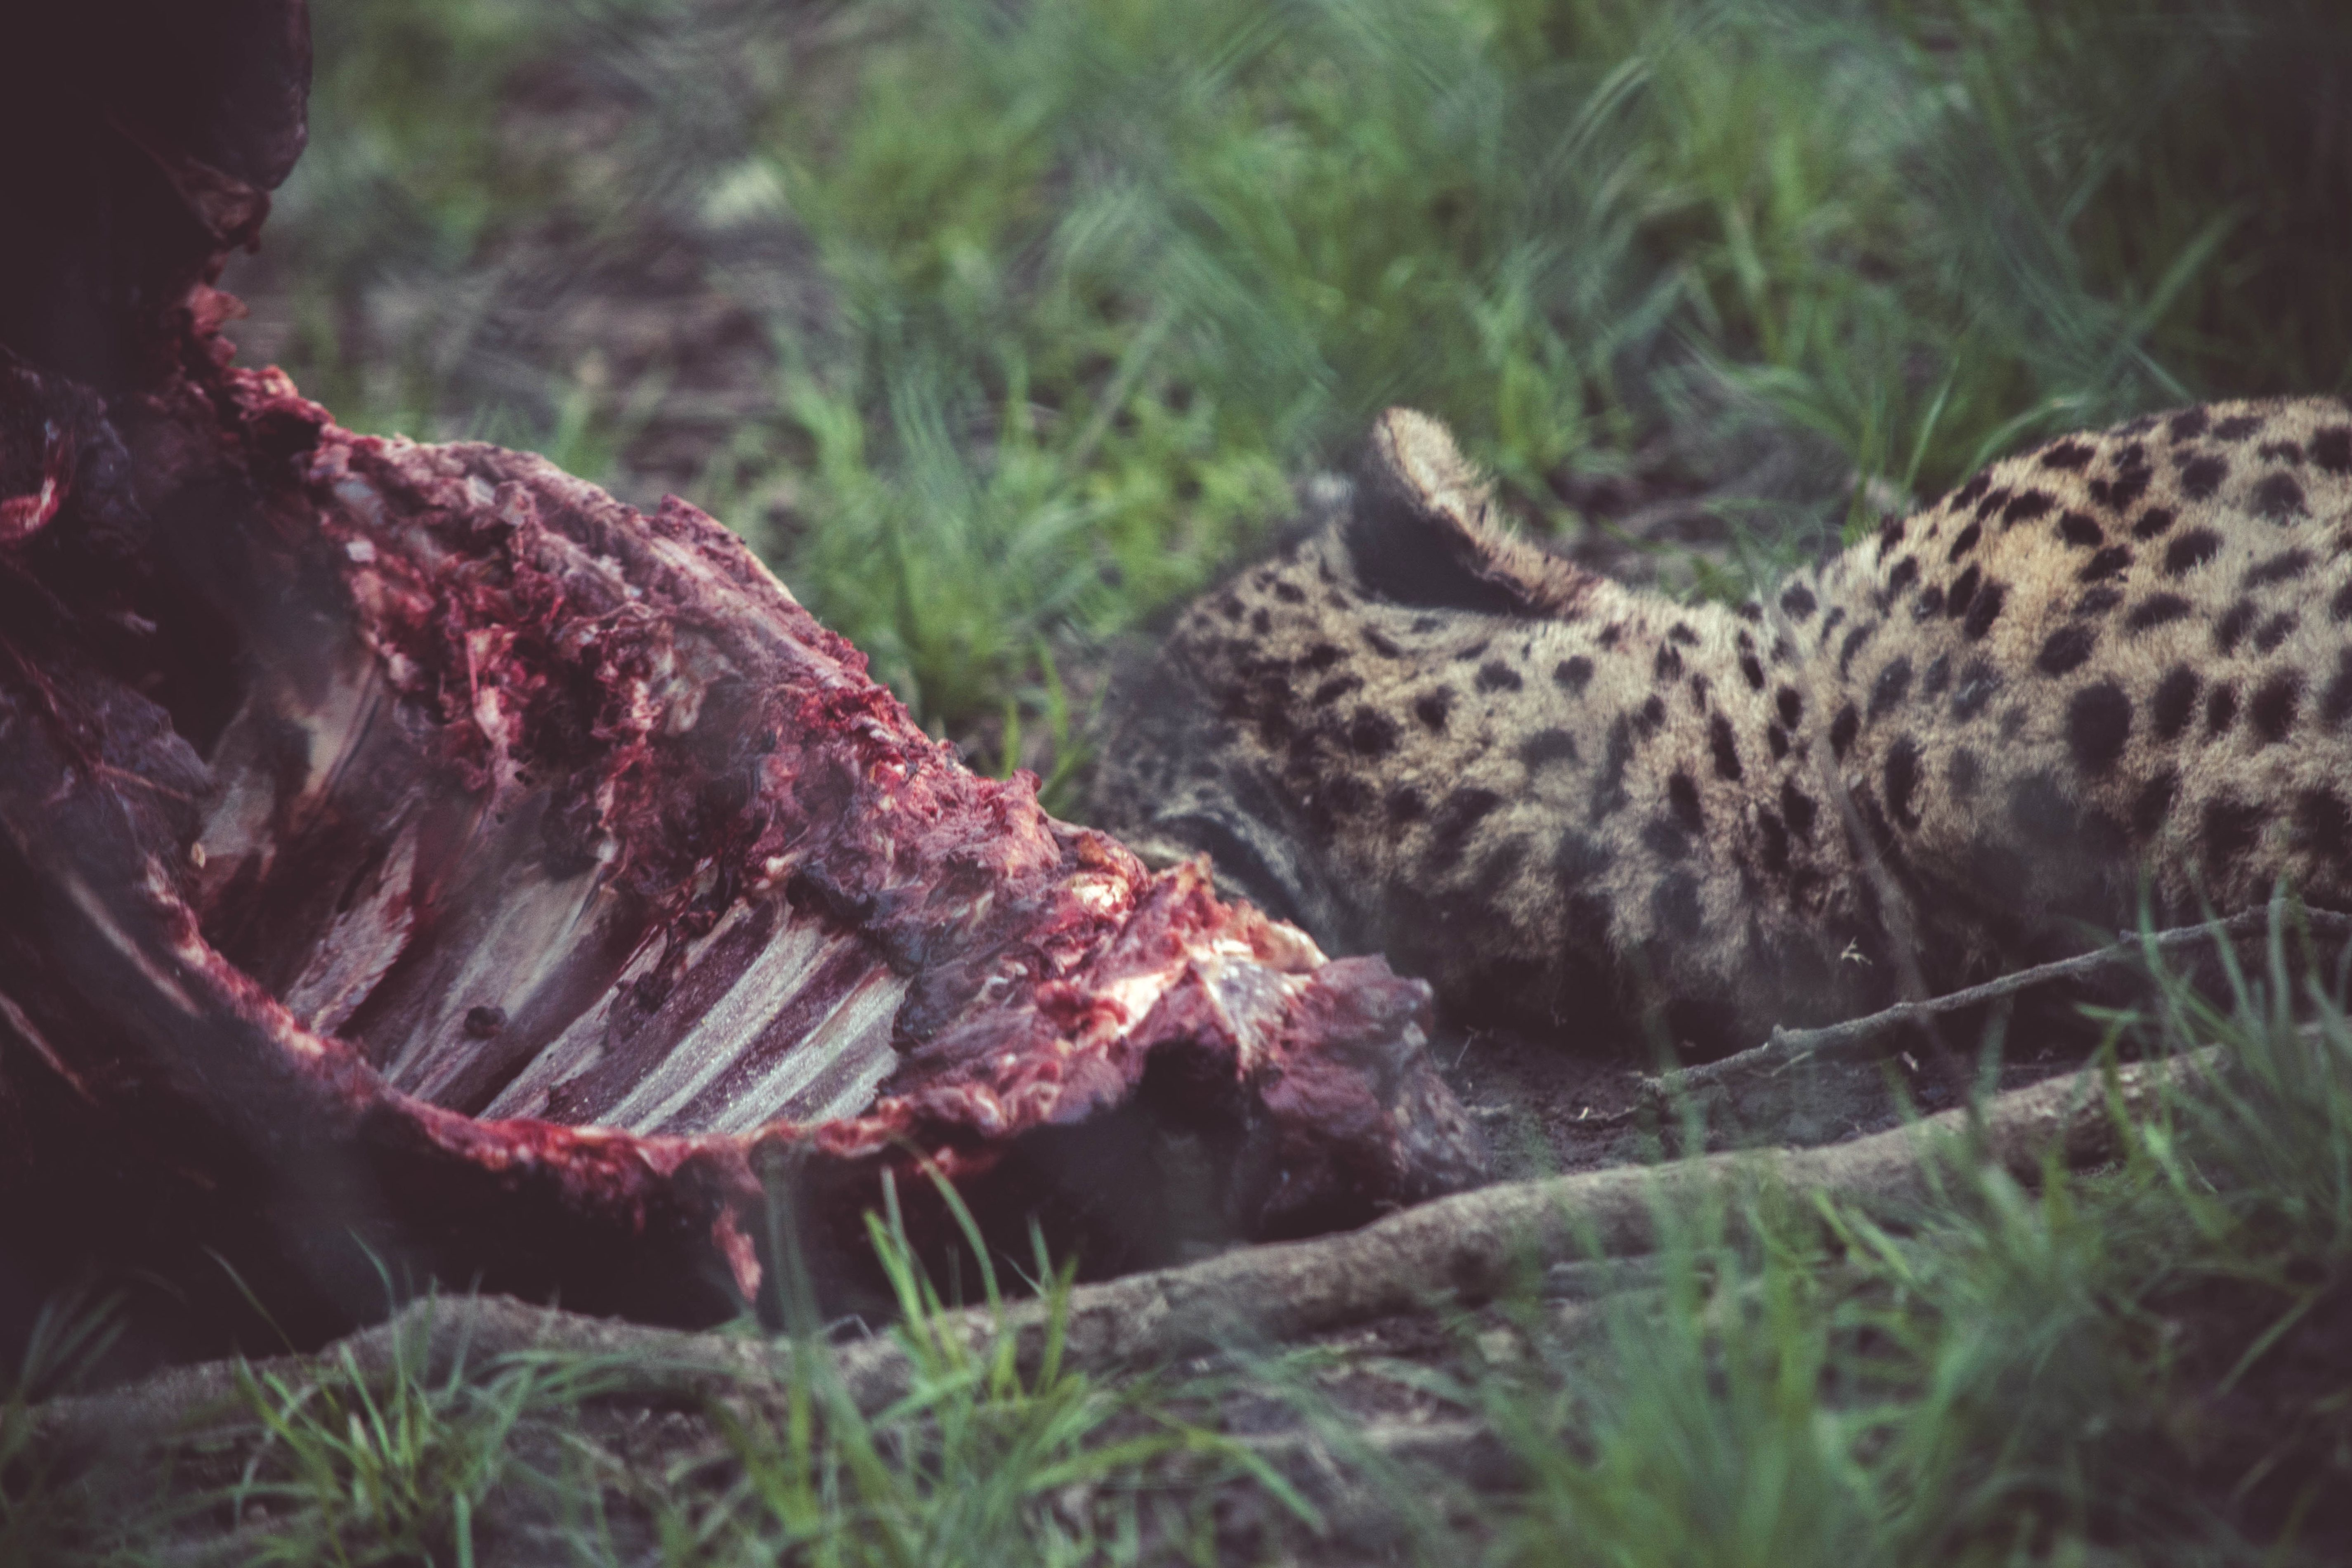 Free picture jaguar animal wildlife meat hunt africa nature jaguar animal wildlife meat hunt africa nature grass wildlife leopard voltagebd Gallery